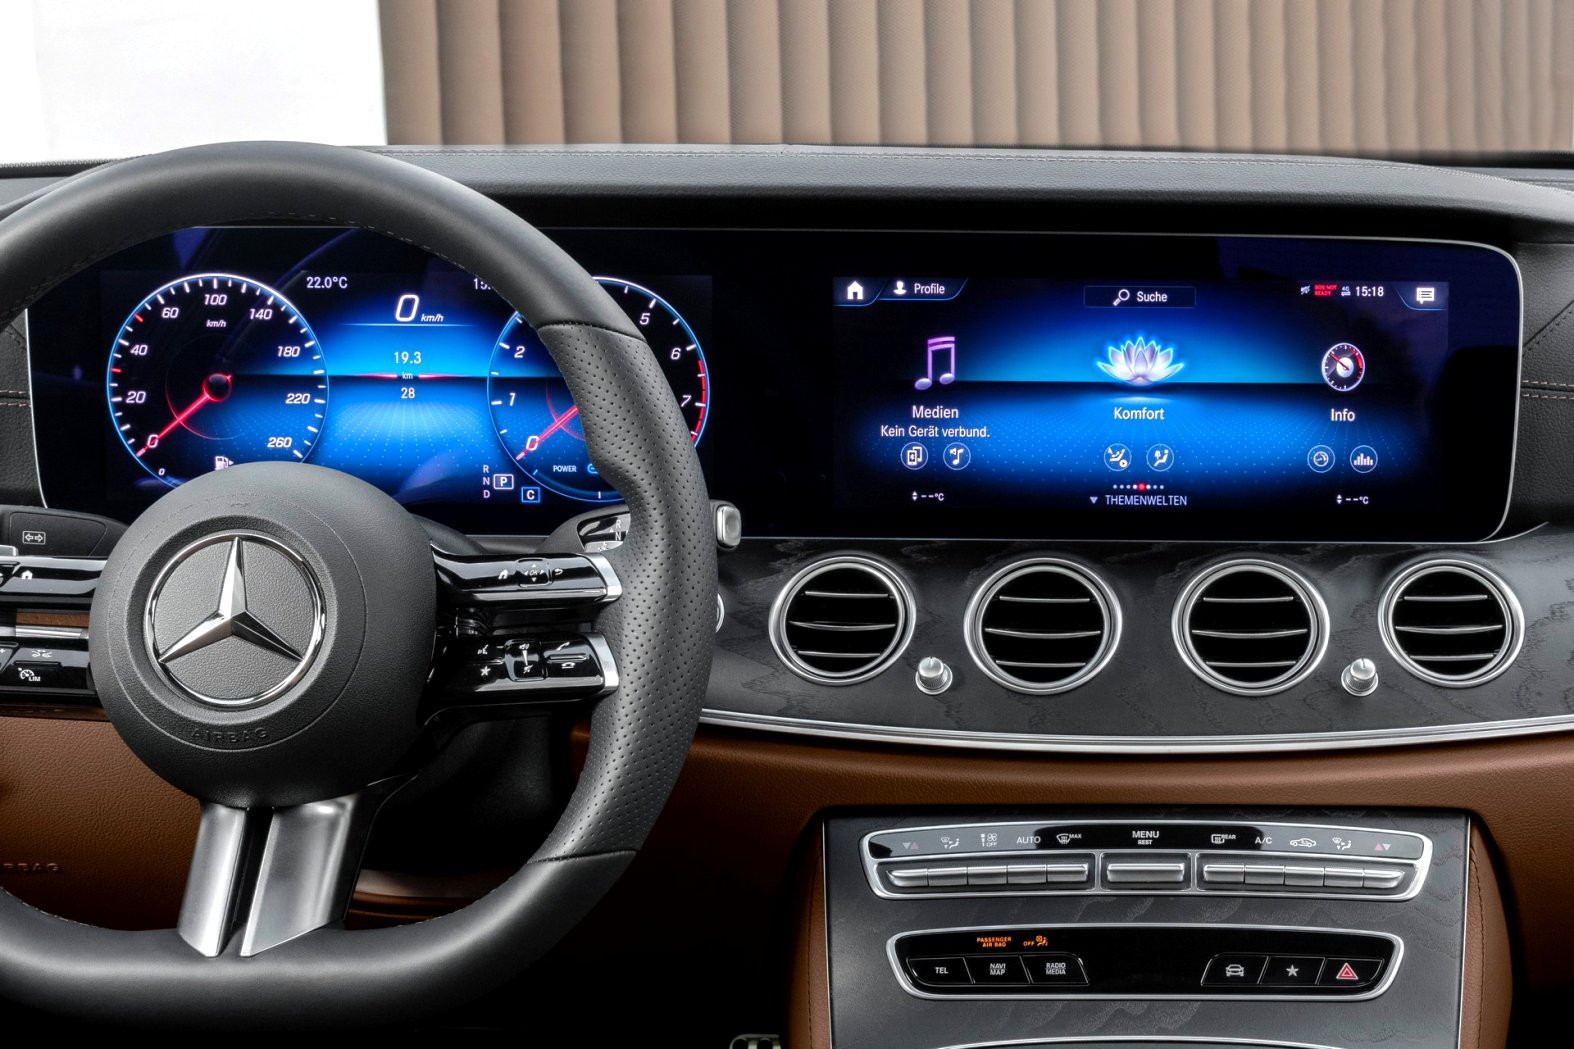 2020 mercedes a class interior Engine